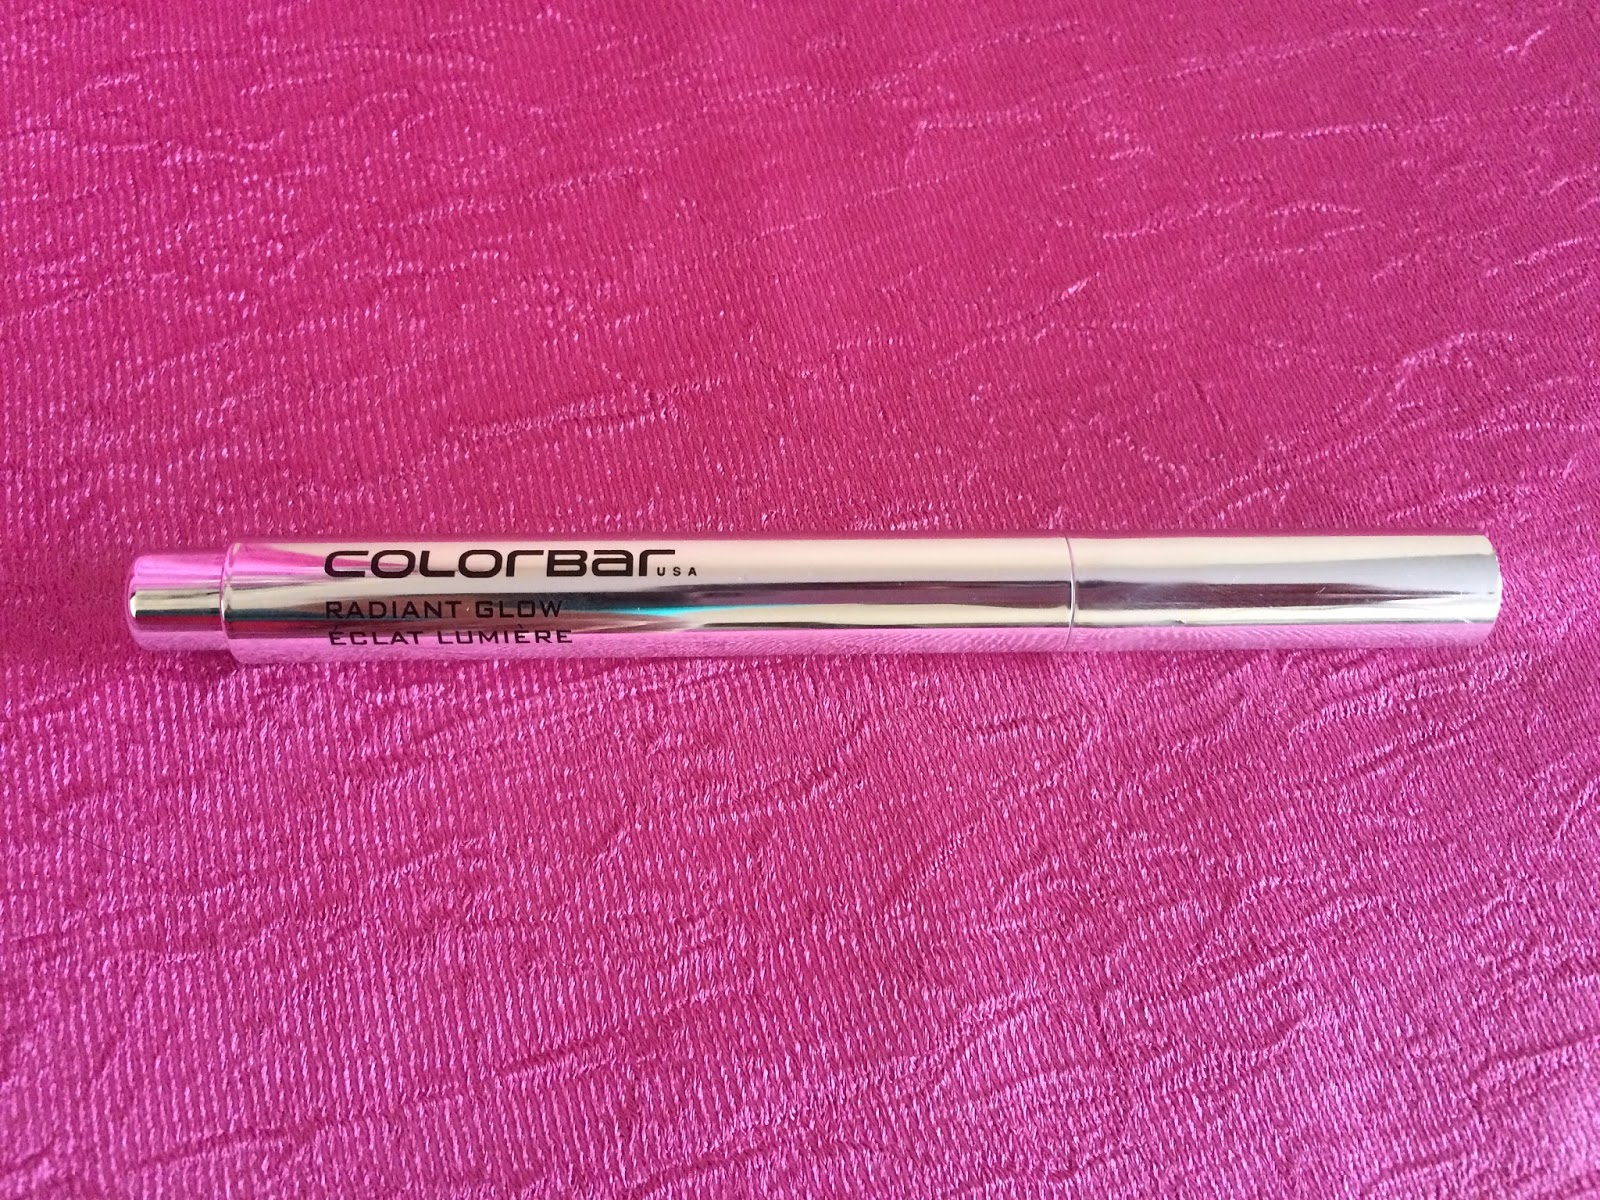 Colorbar Radiant Glow Face Illuminator Pen: Review - BedazzleU